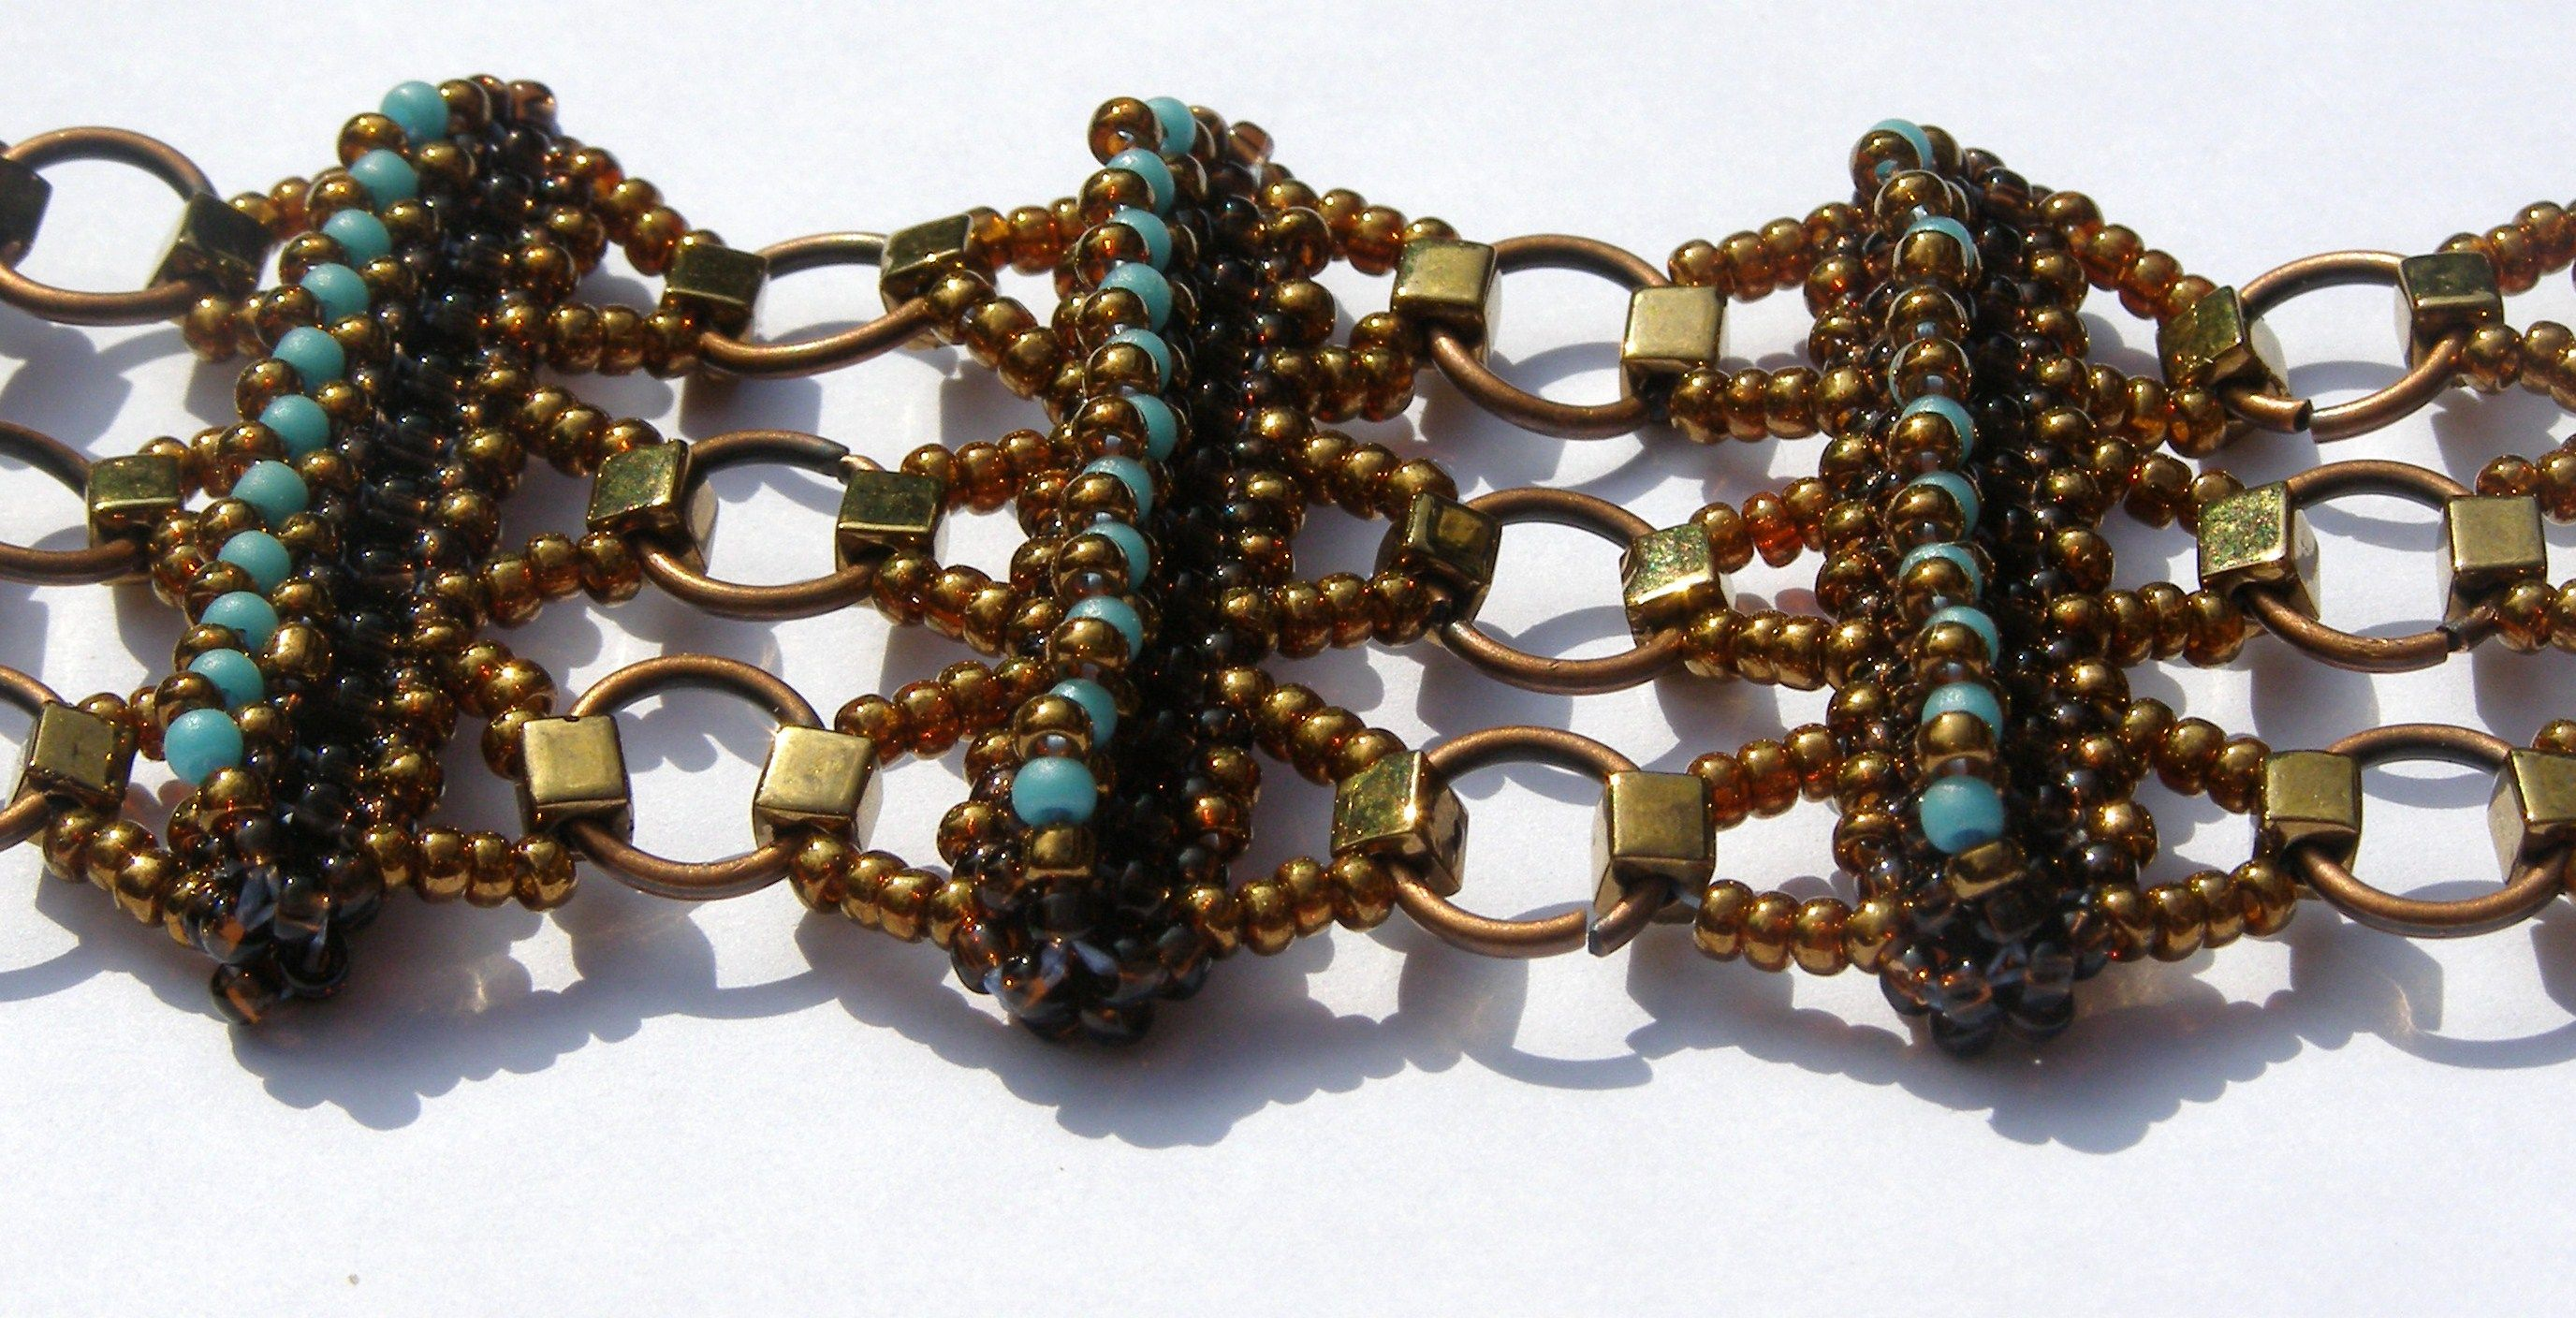 Bracelet interesting how this was put together